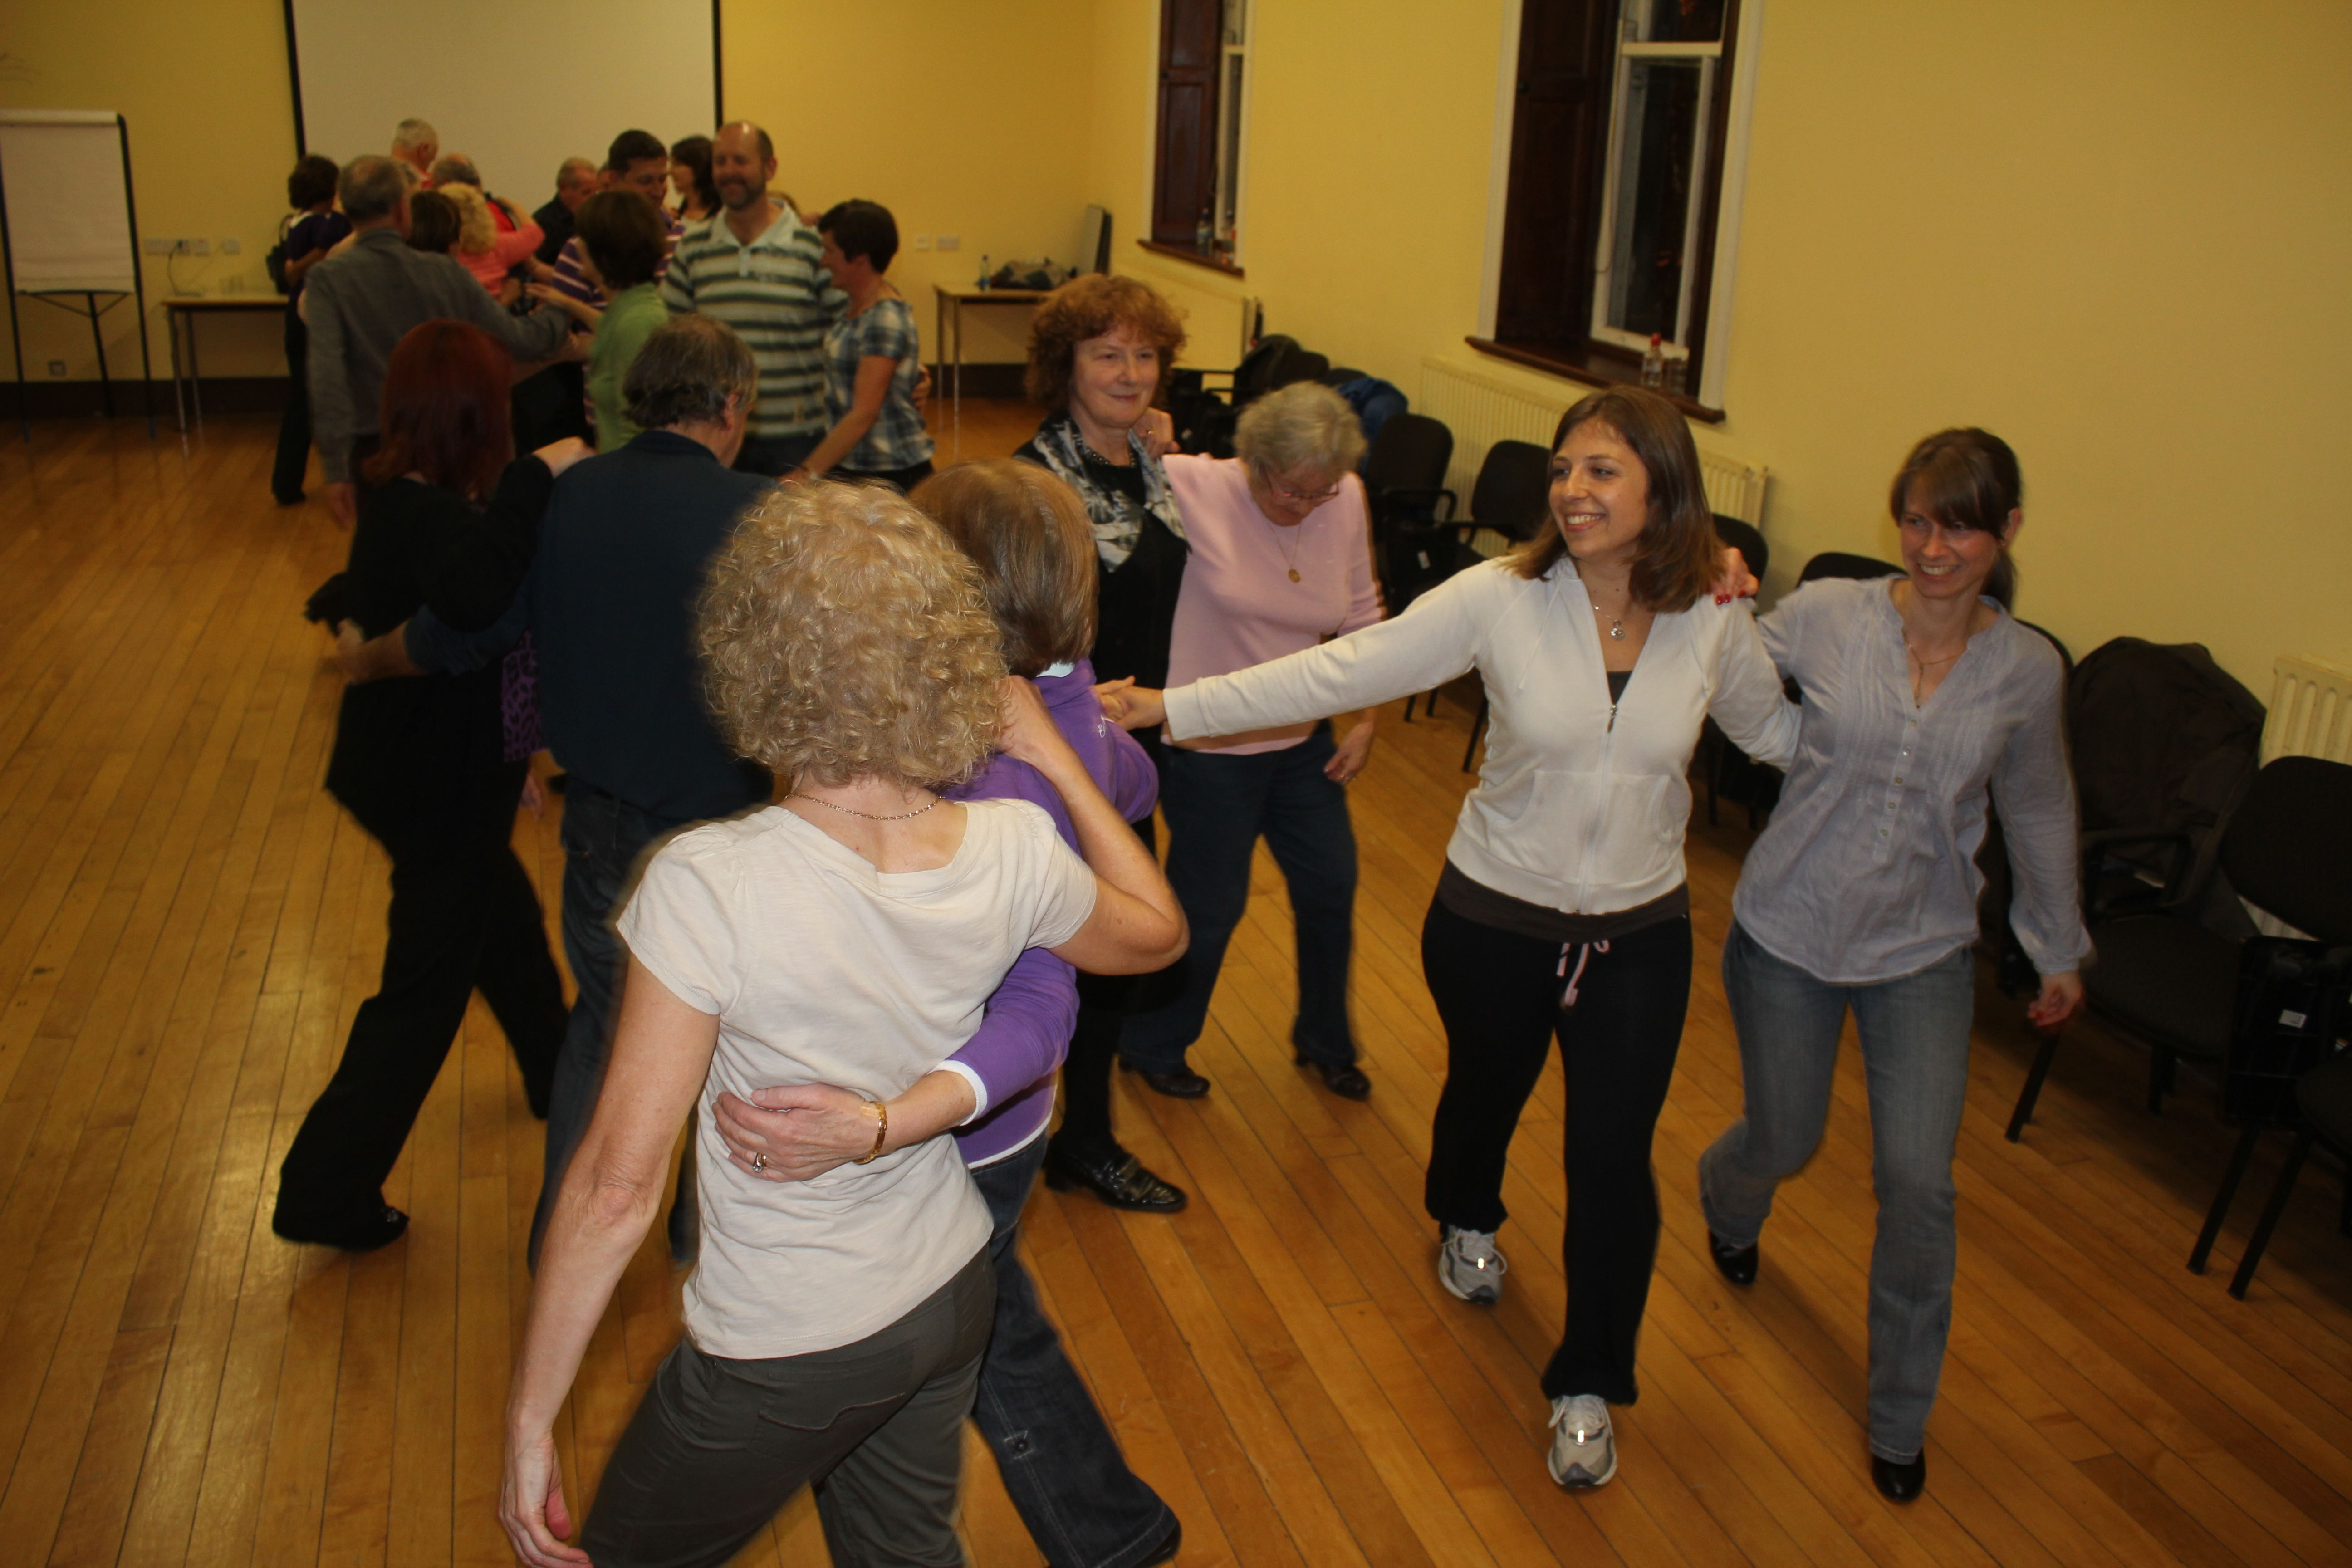 Tuesday evening 8pm: Learn Irish Set Dancing (Steps 7:45pm-8:00pm)